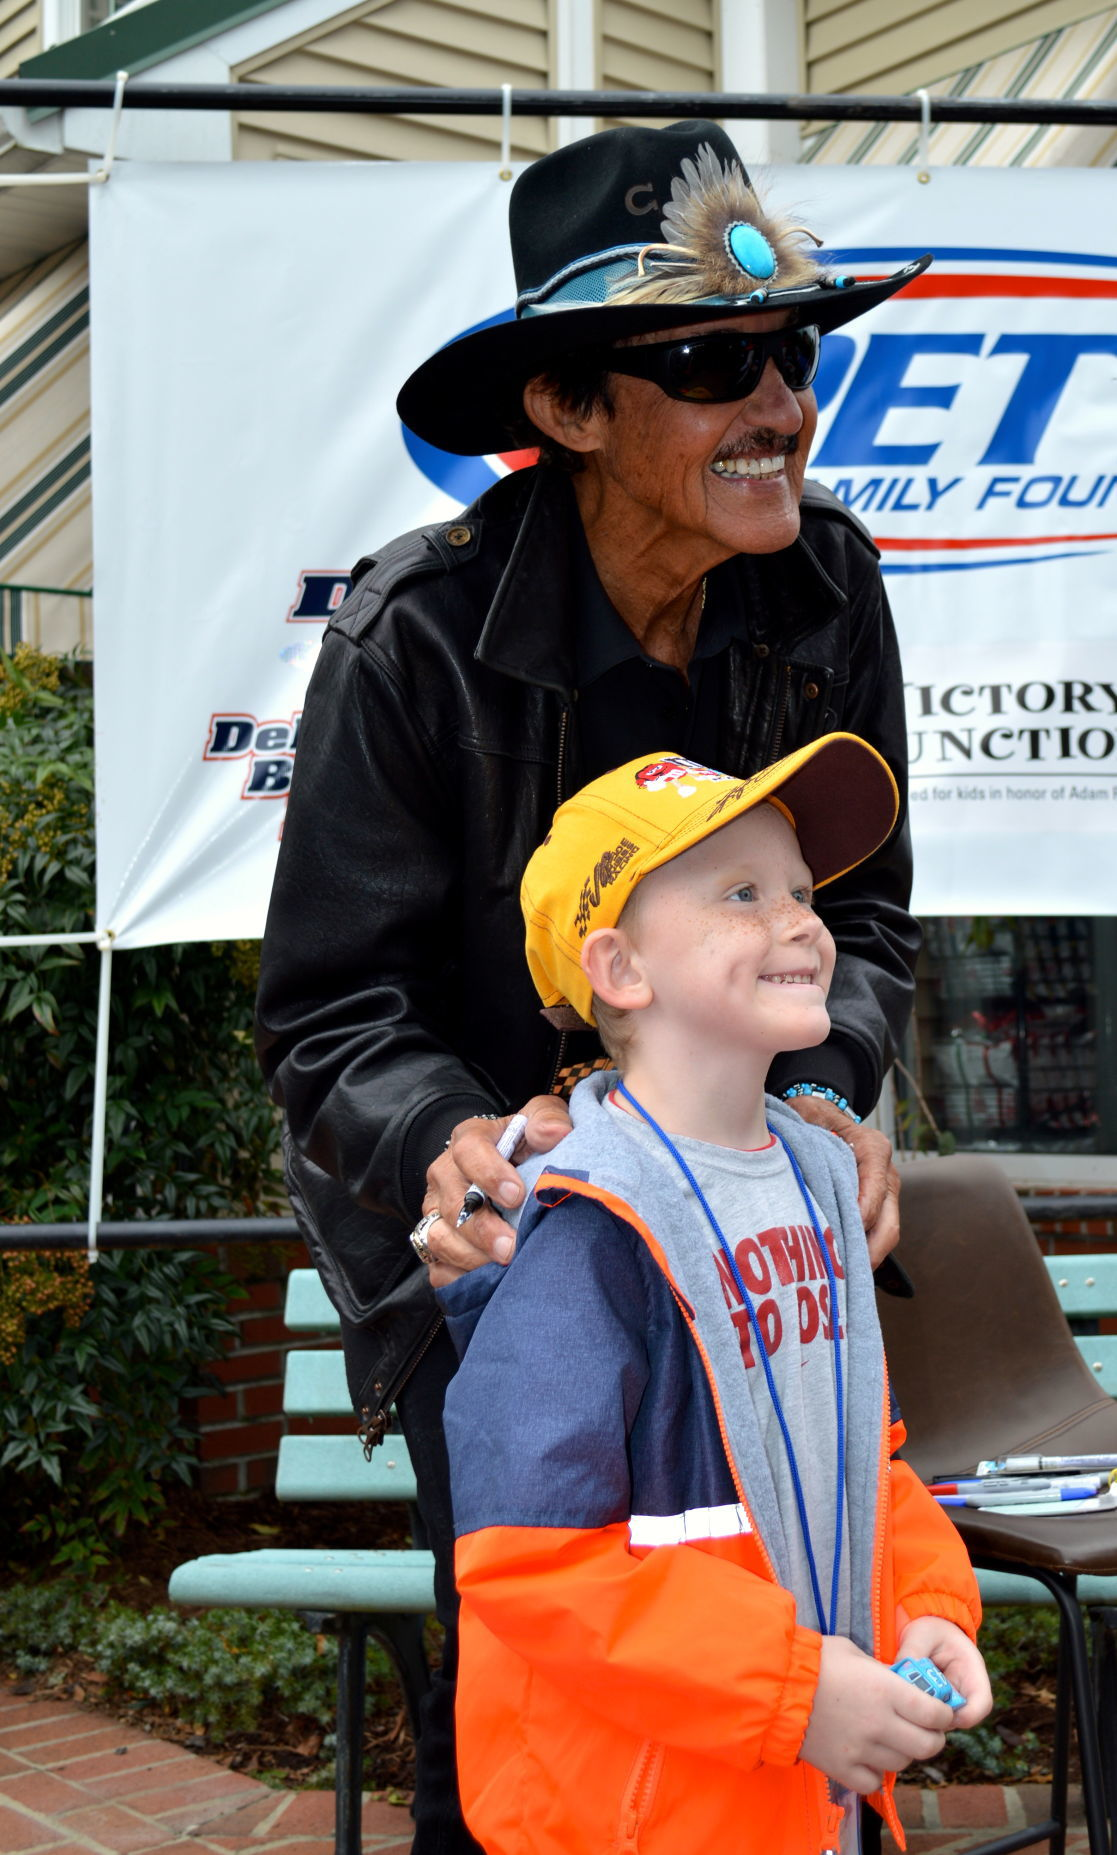 Richard Petty scheduled to appear at Ridgely Car Show Sept. 22